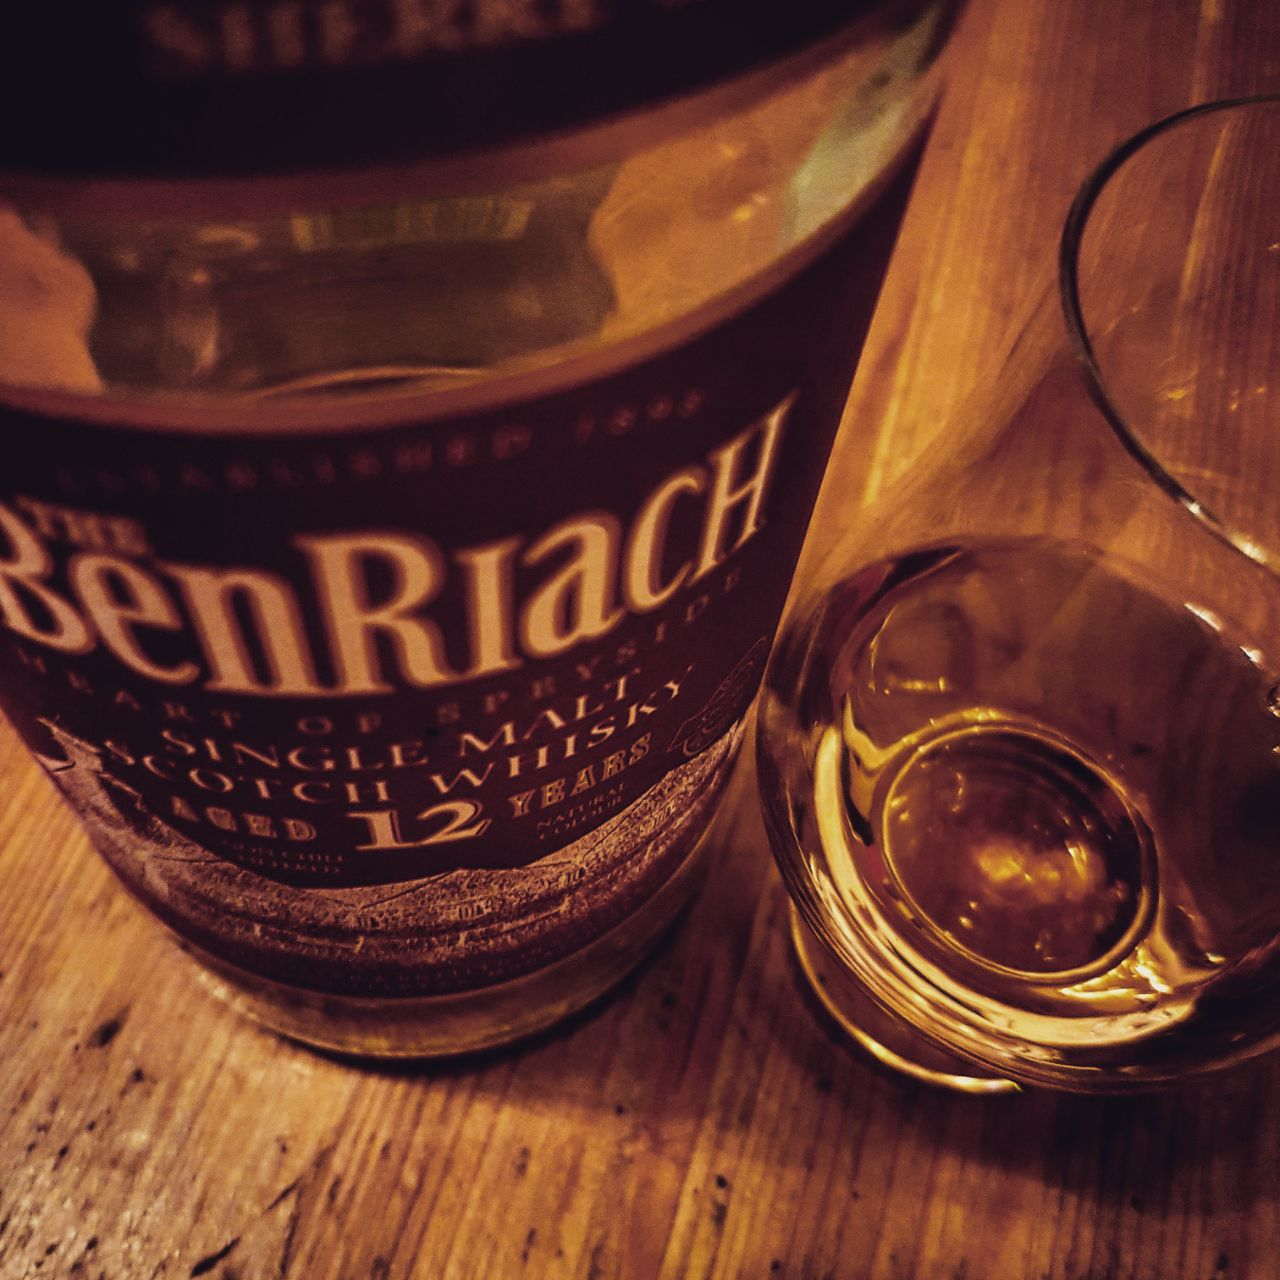 Benriach 12 Jahre Single Malt Scotch Whisky